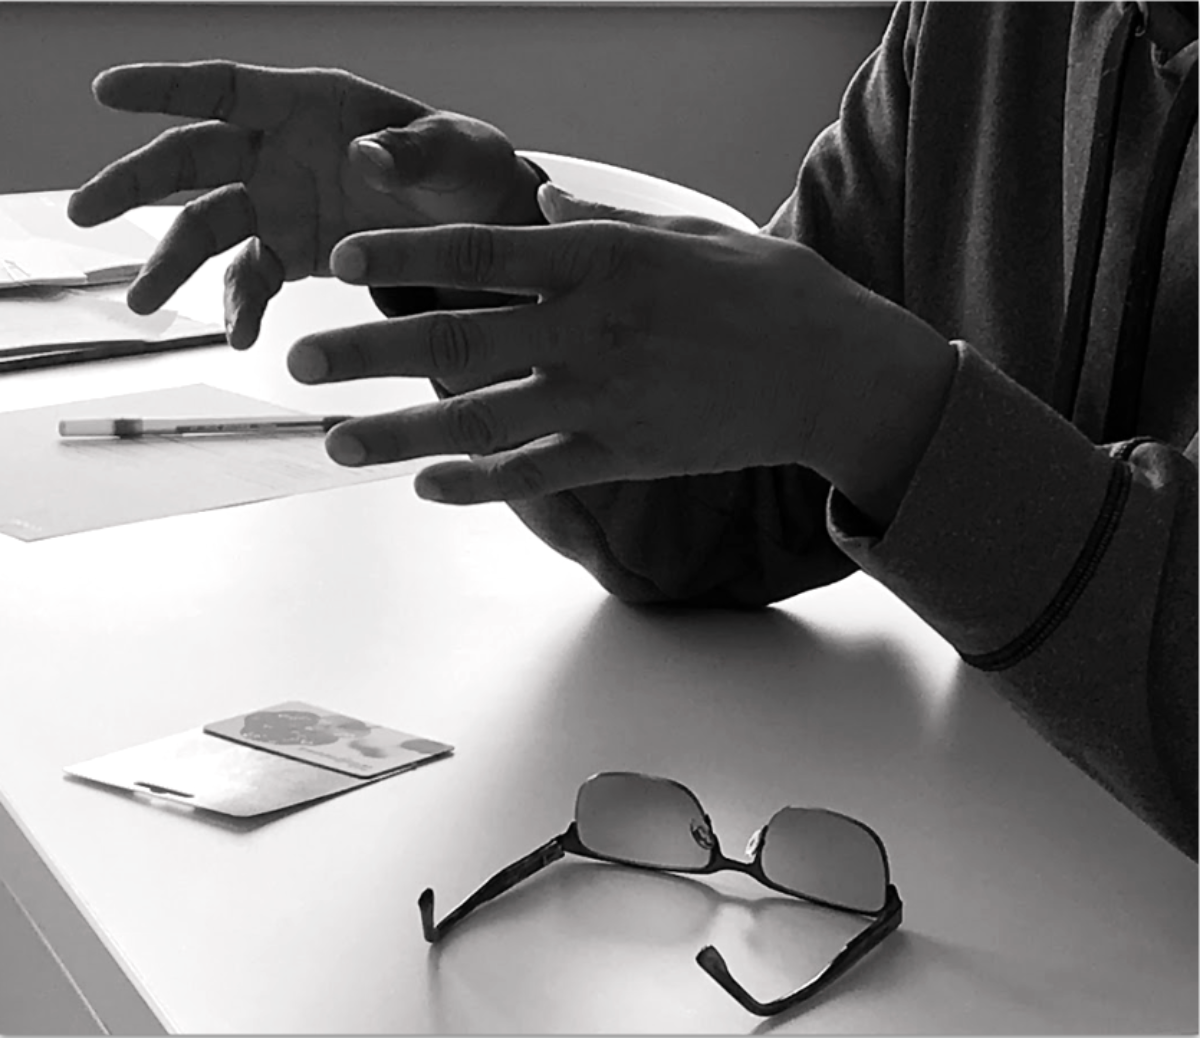 A client's hands over a table